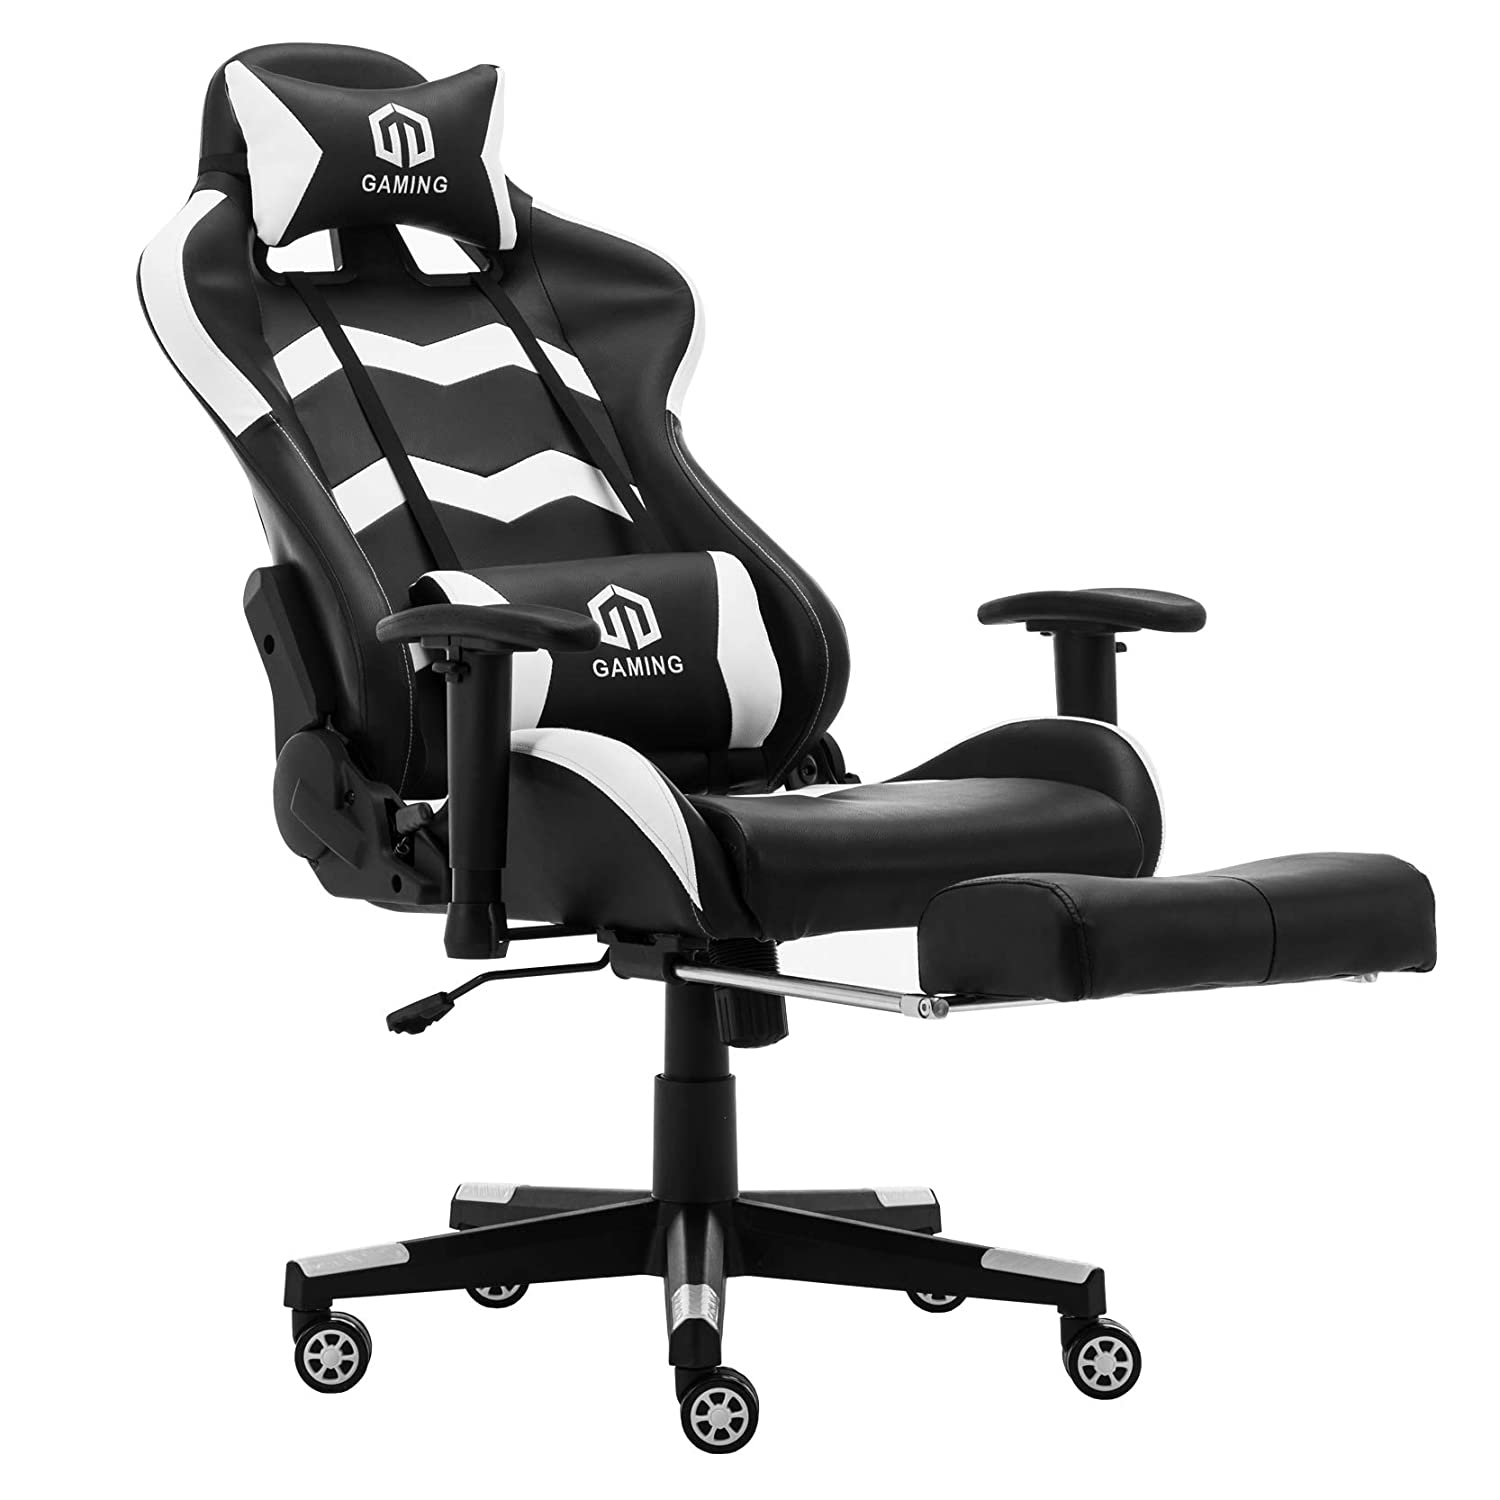 Gaming Chair Racing Office Chair Computer Desk Chair Executive and Ergonomic Reclining Swivel Chair with Headrest, Lumbar Cushion and Retractable Footrest White